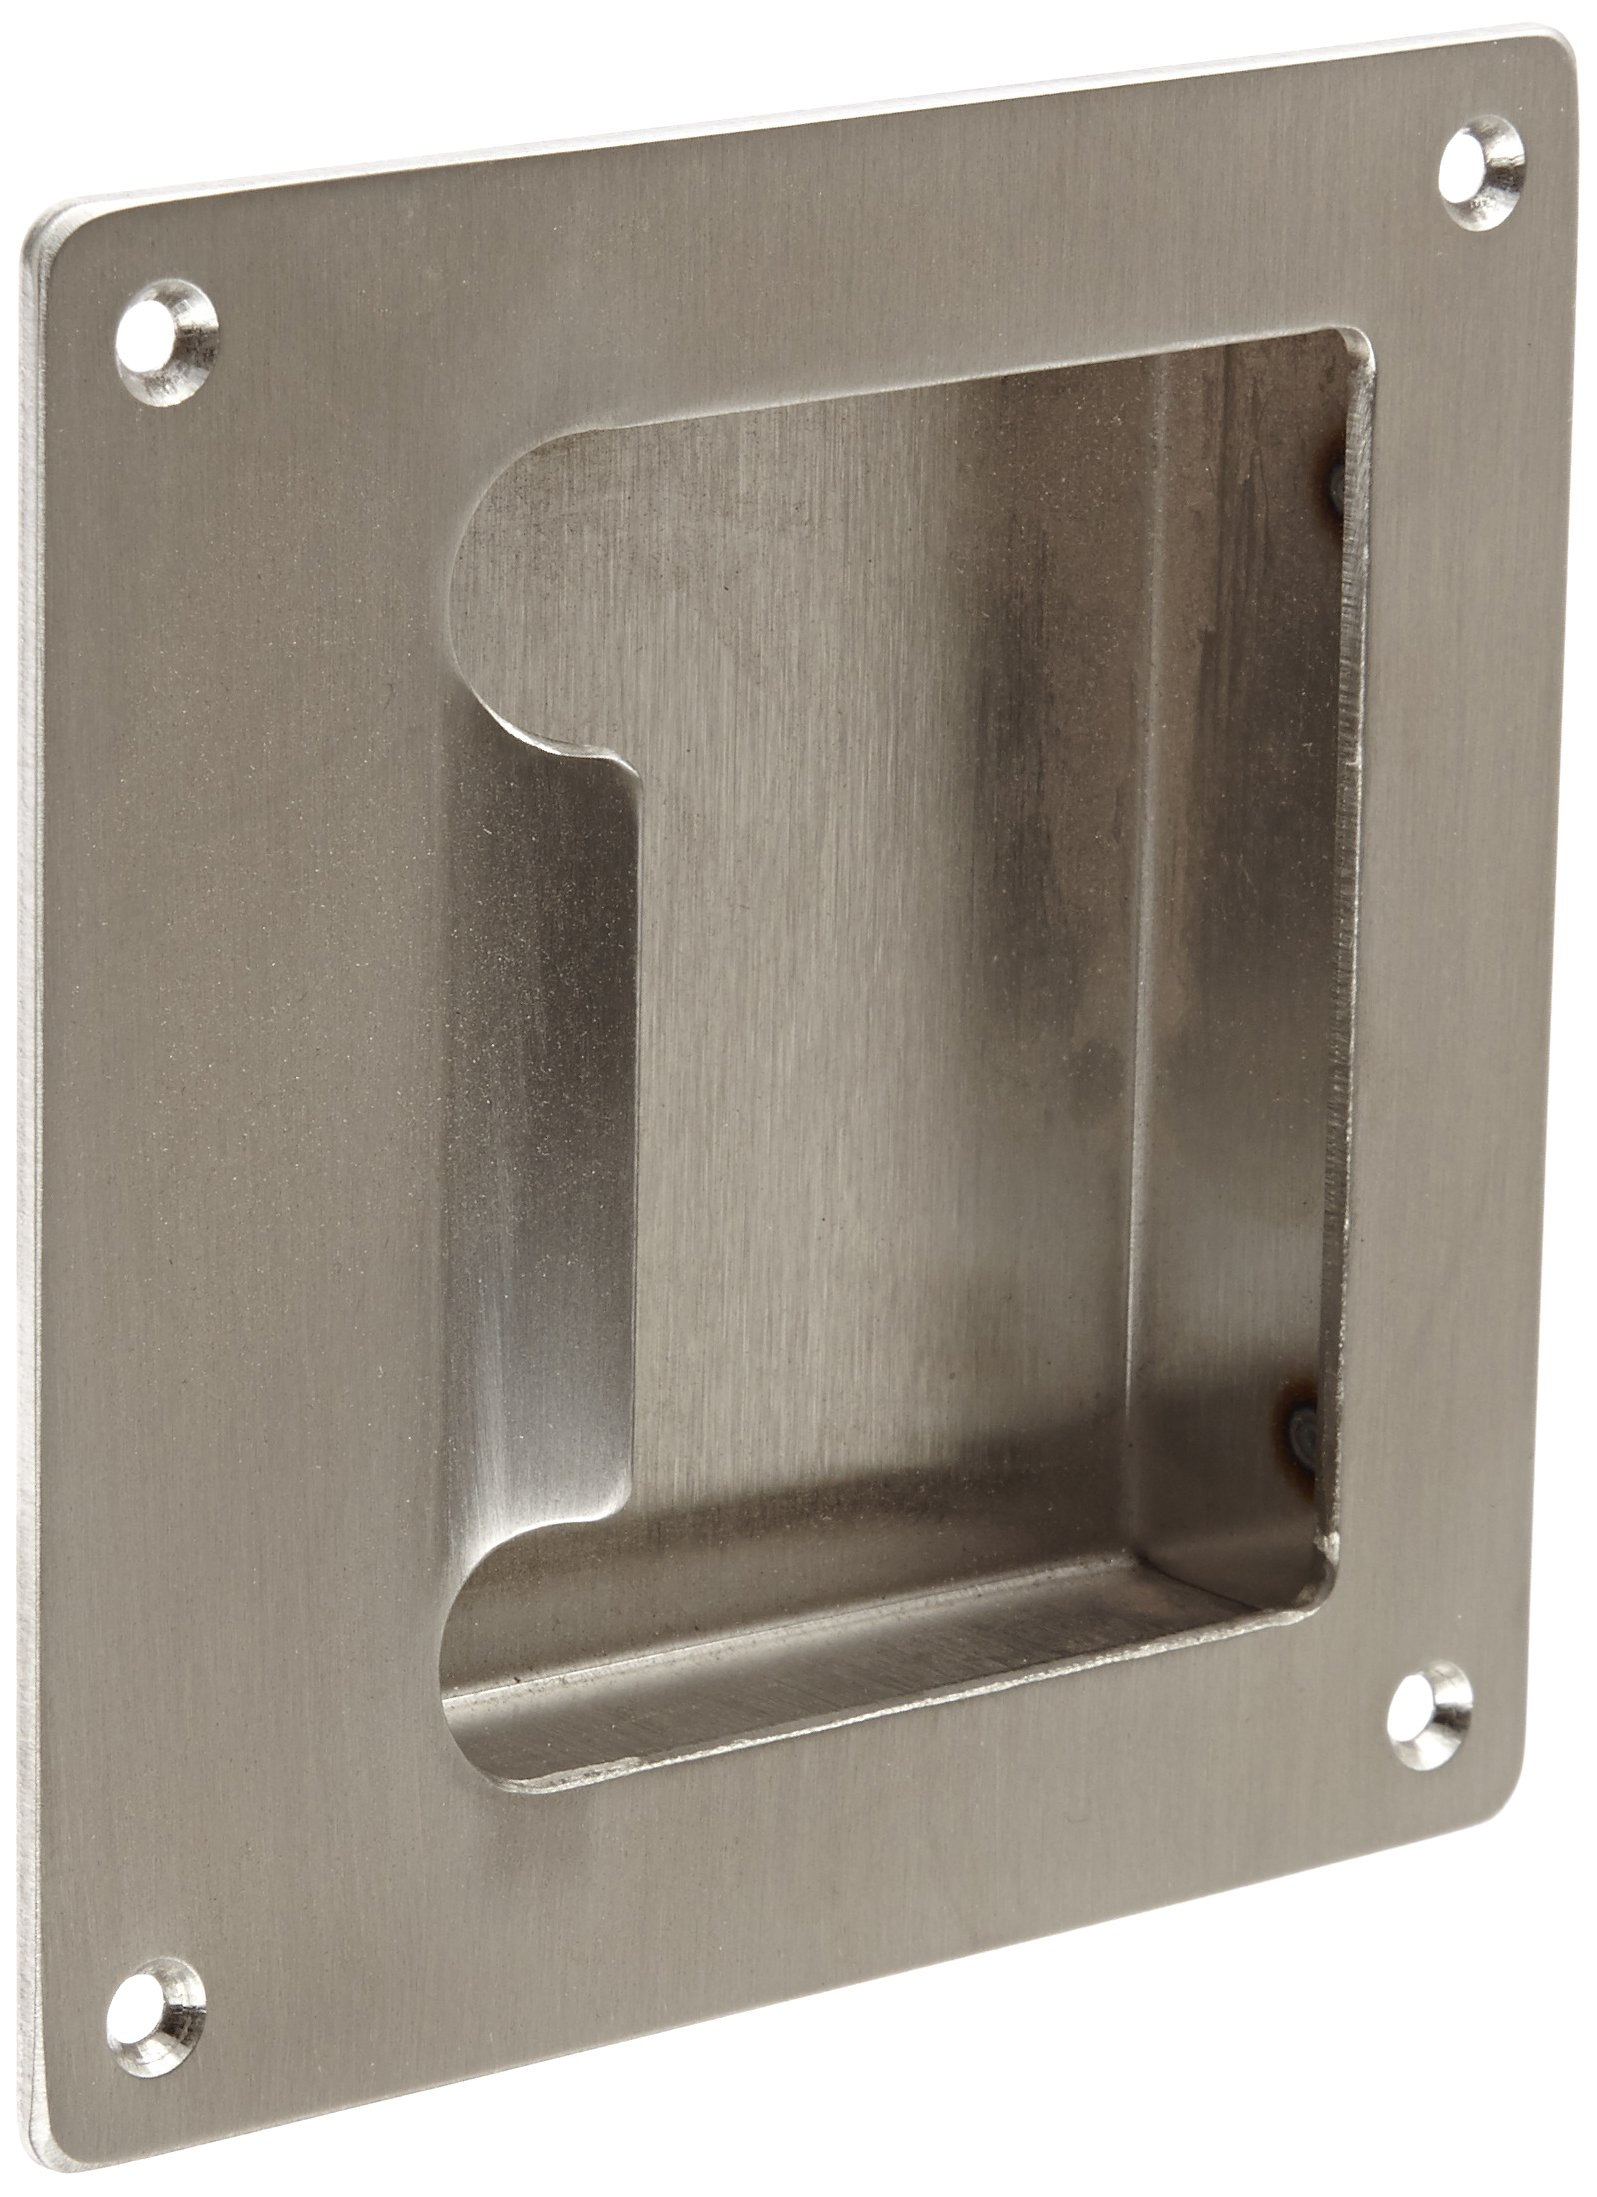 Rockwood BF97.32D Stainless Steel Barrier Free Flush Pull, Sheet Metal Screw Fasteners, 5'' Width x 5'' Height x 7/8'' Depth, Satin Finish by Rockwood